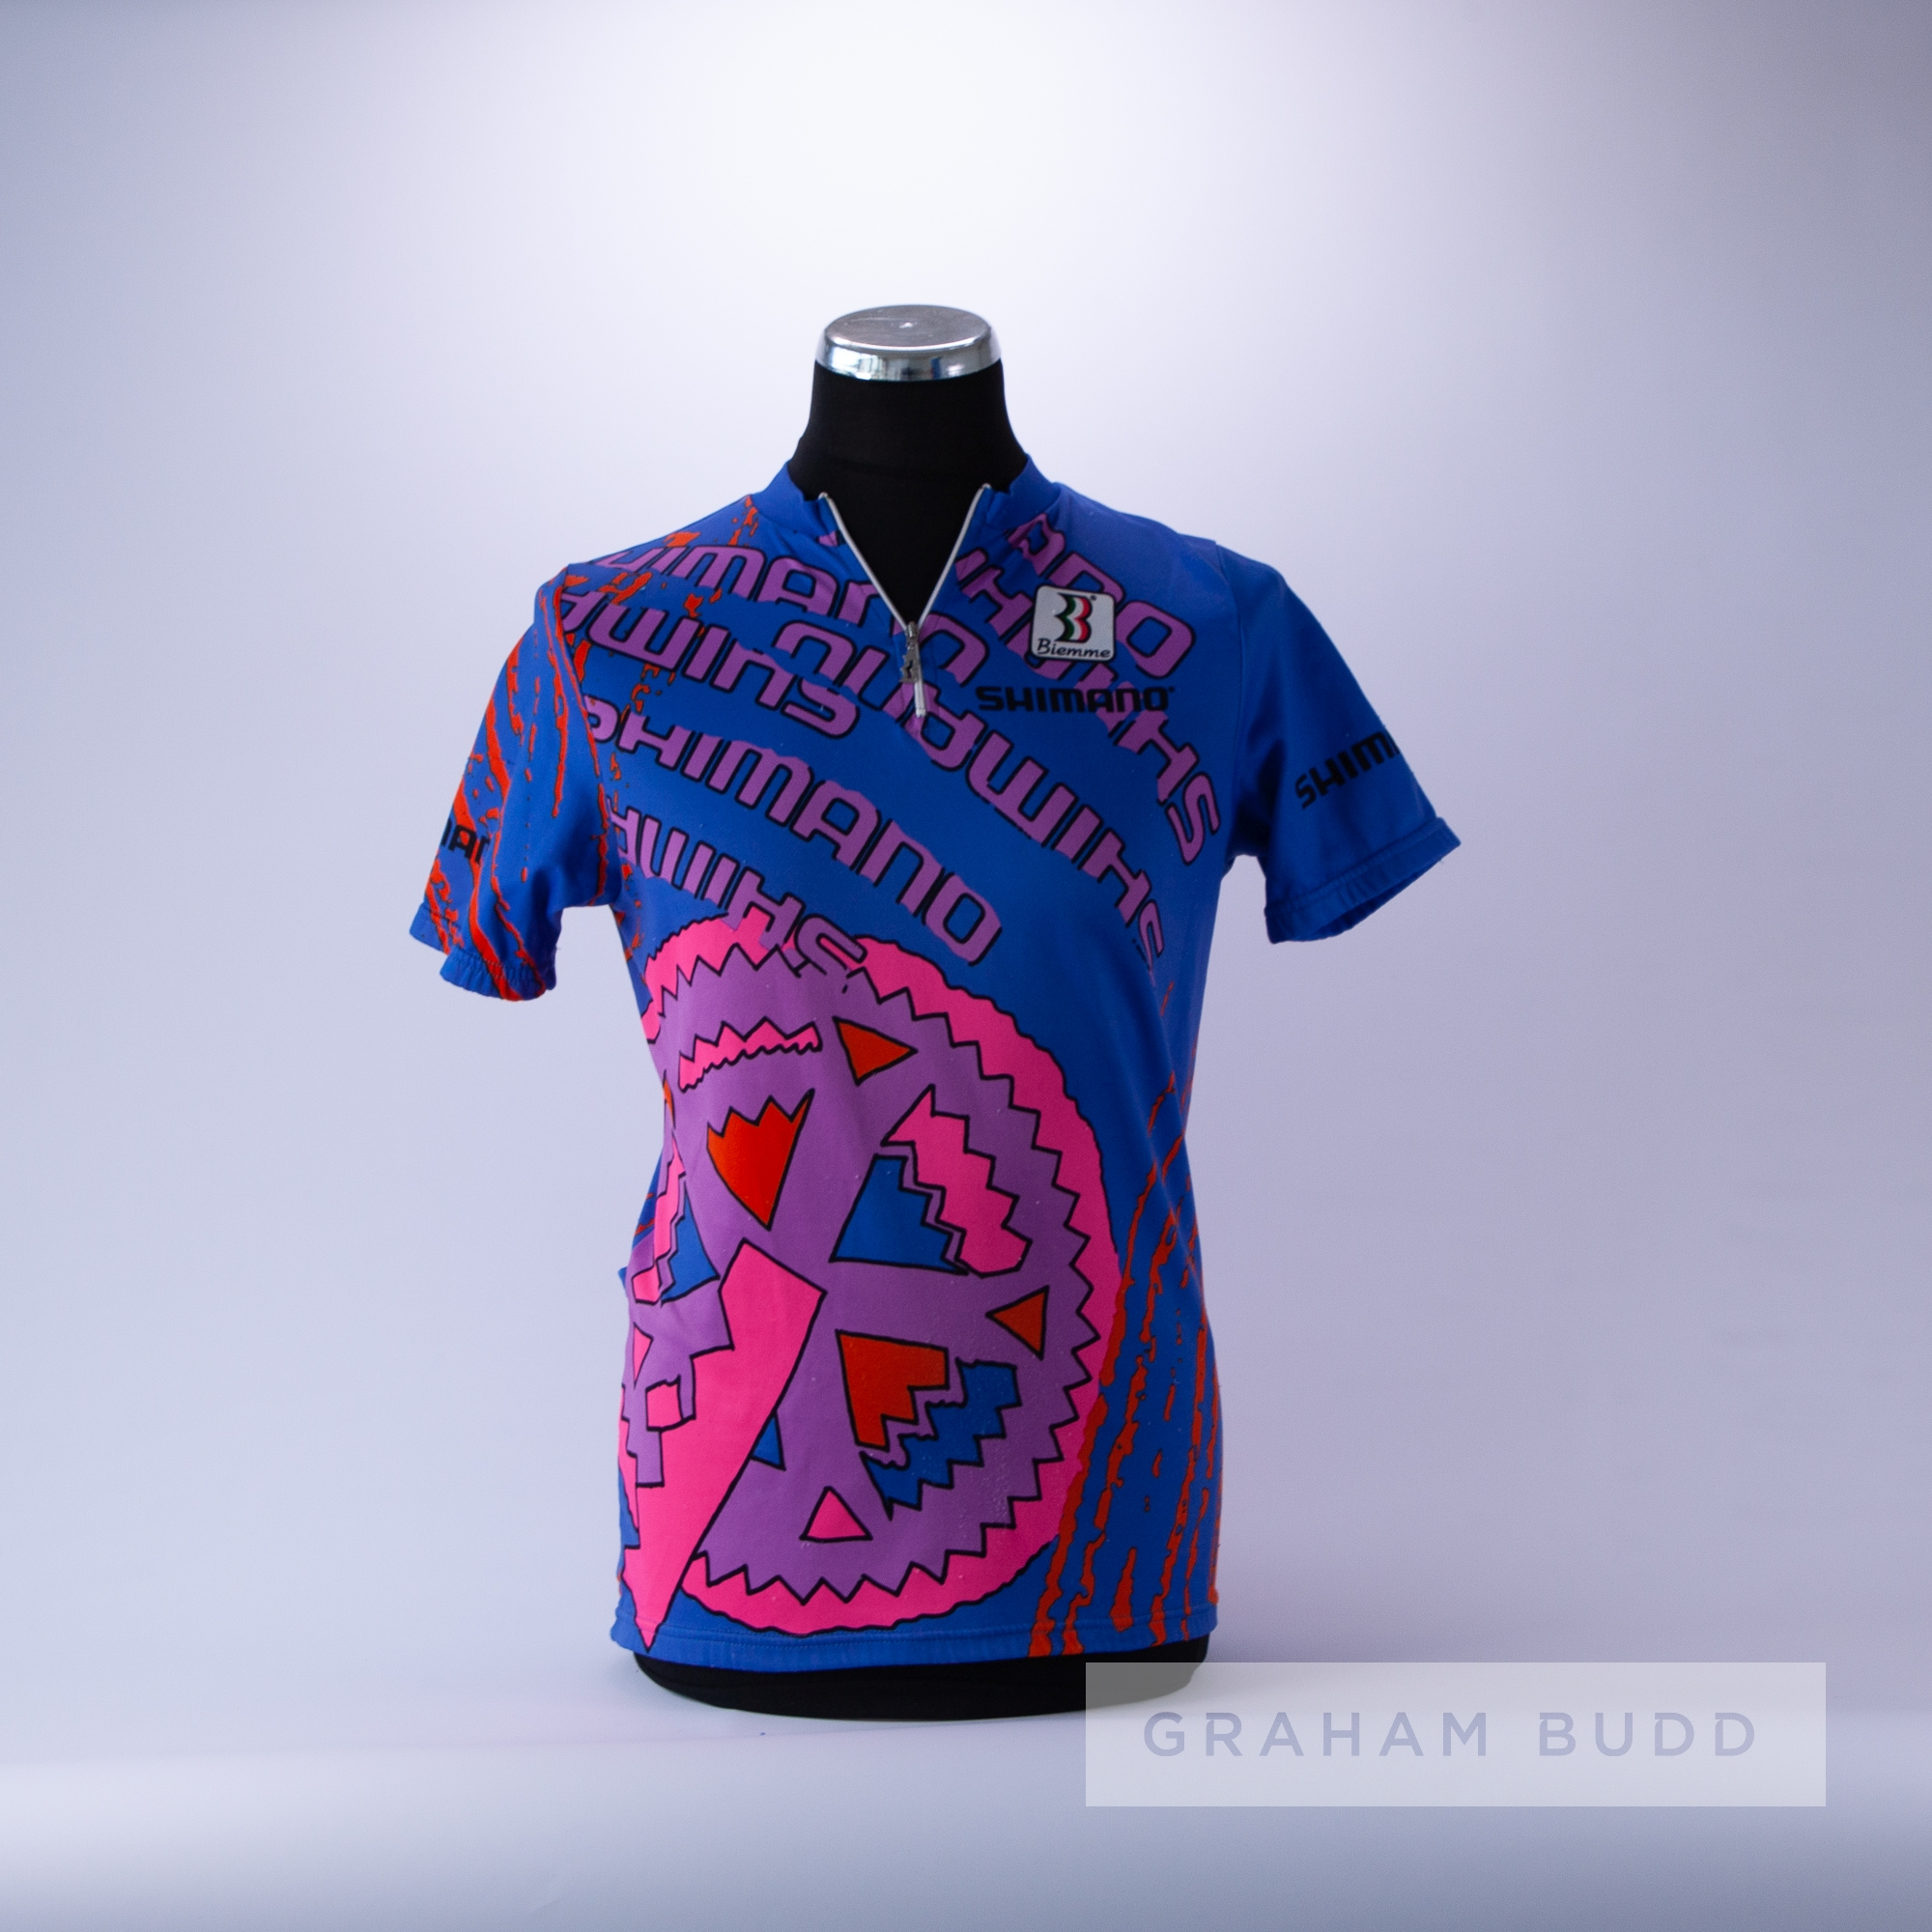 1990 blue, pink, purple and red Shimano Biemme Cycling race jersey, scarce, polyester and tactel - Image 3 of 4